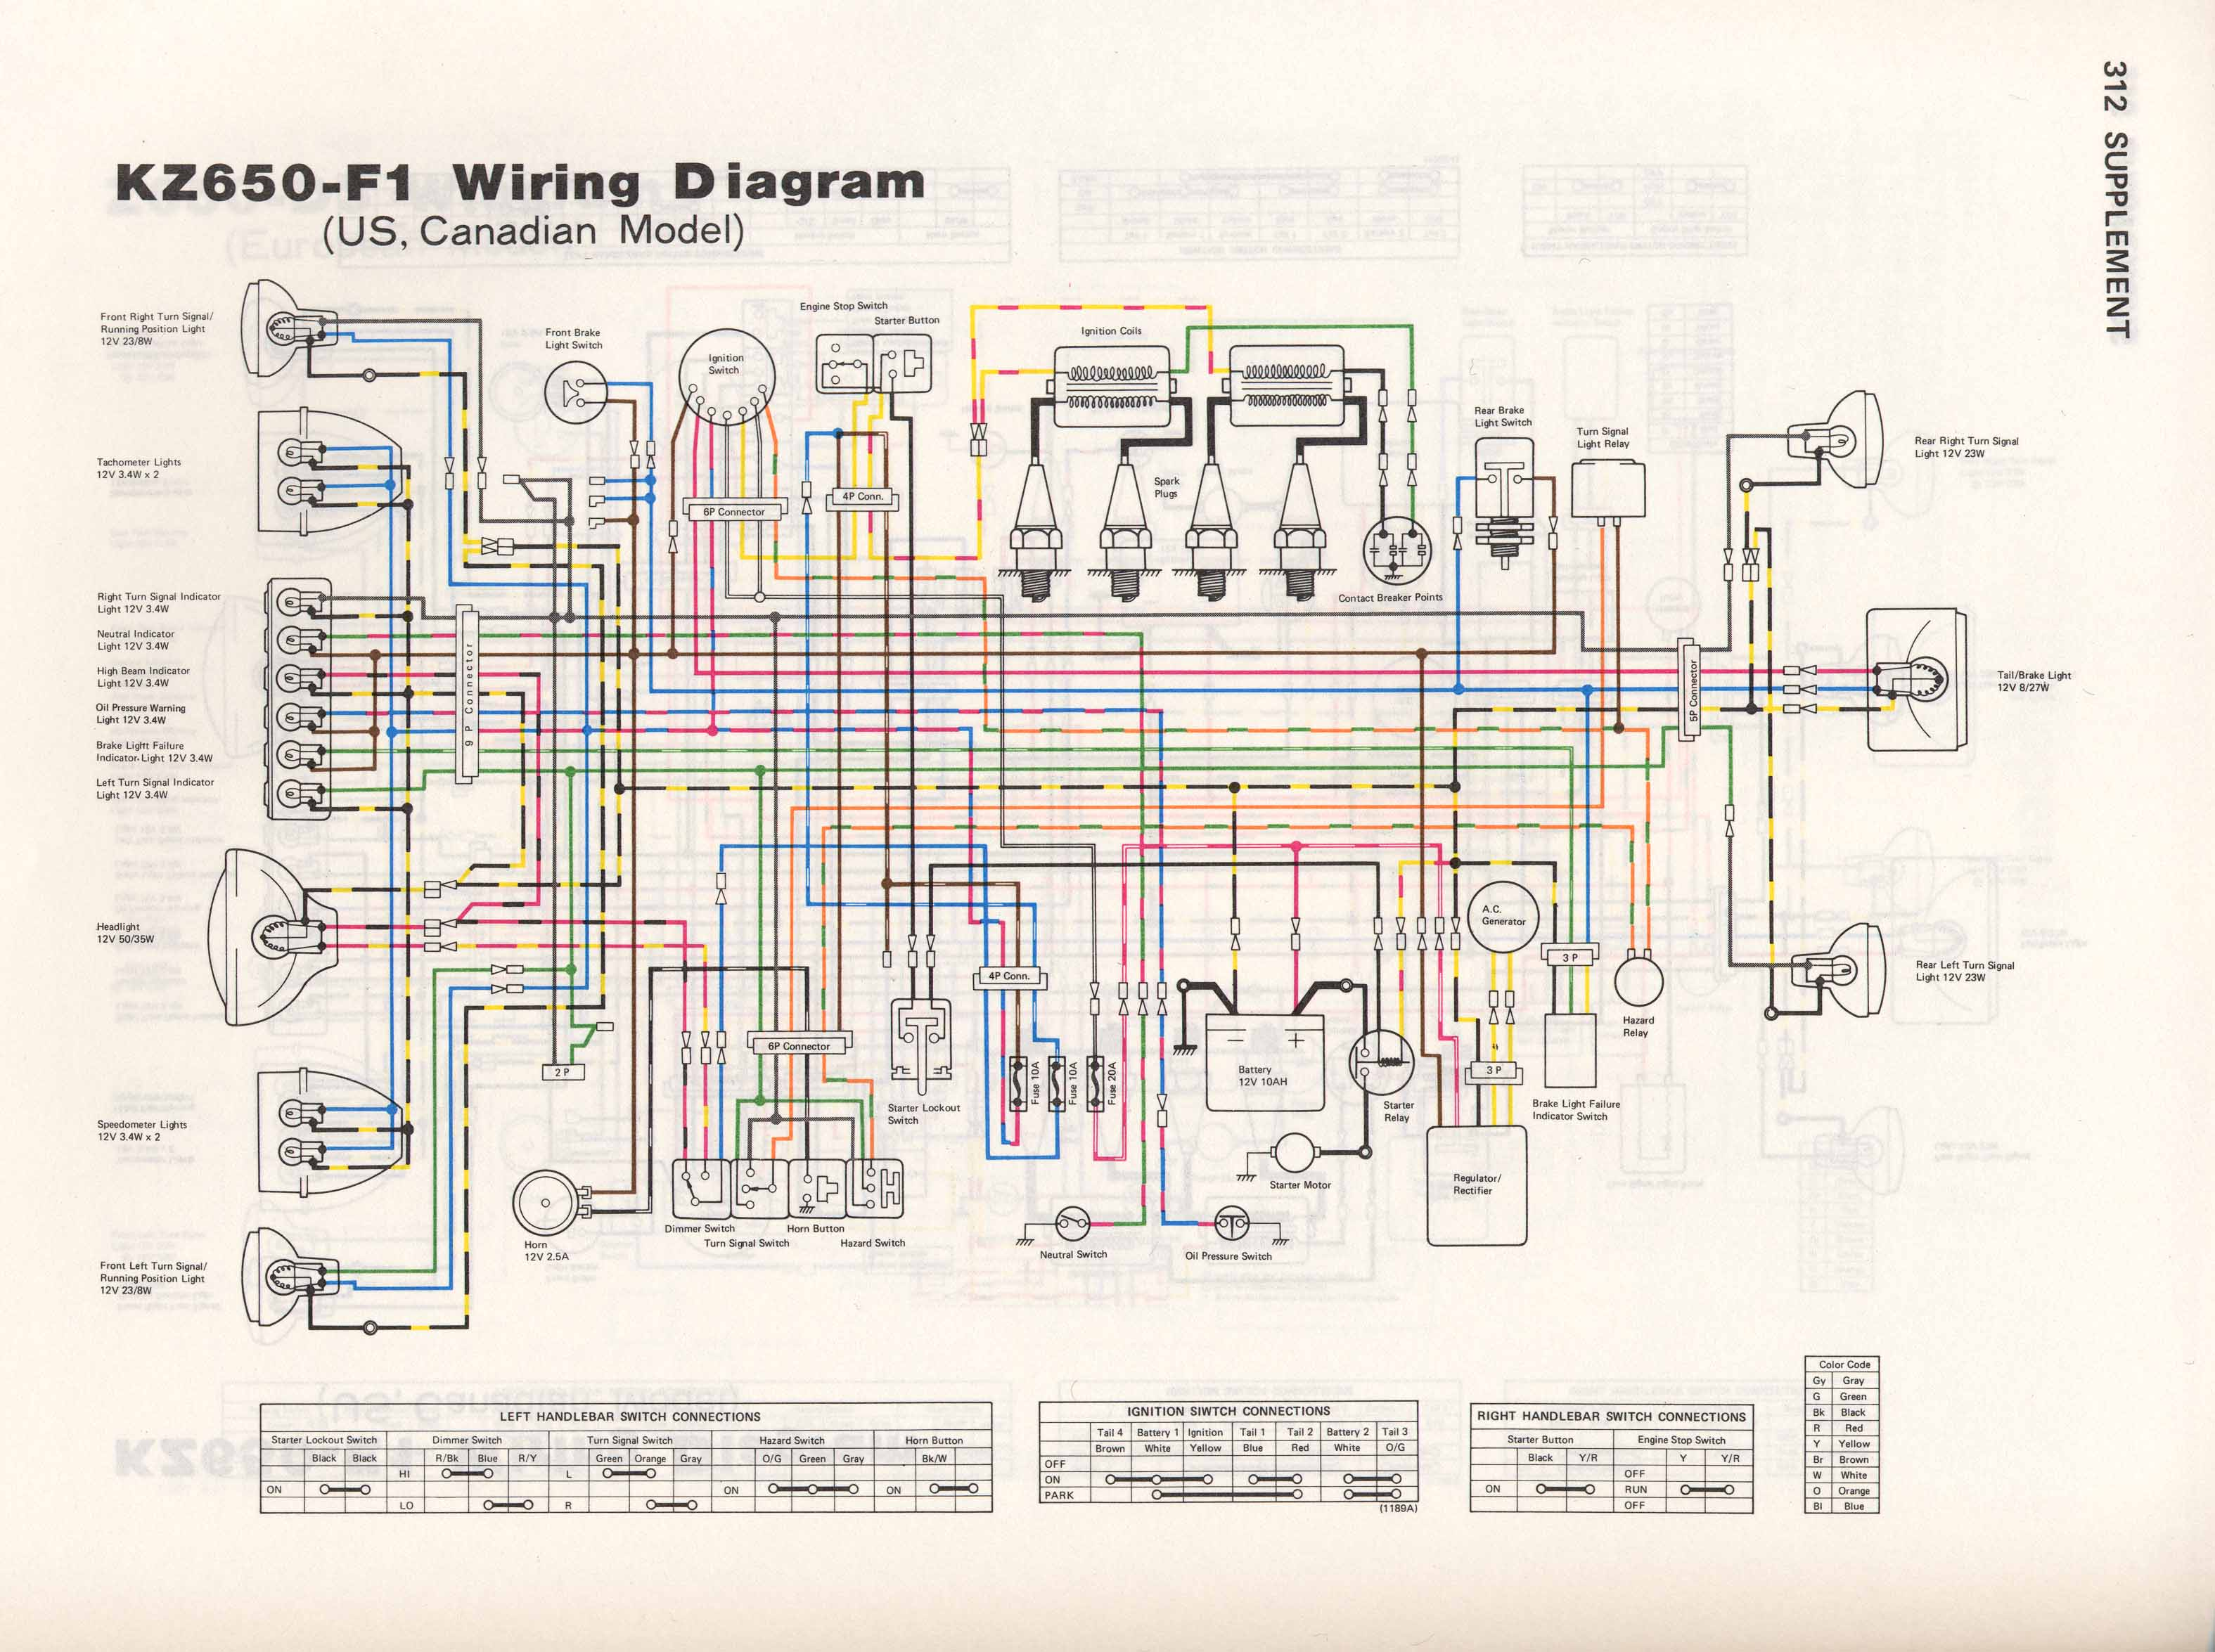 1979 Xs1100 Wiring Diagram Free Picture Schematic Worksheet And Cb750k3 Diagrams Kz650 Info Rh Vulcan 1500 Xs650